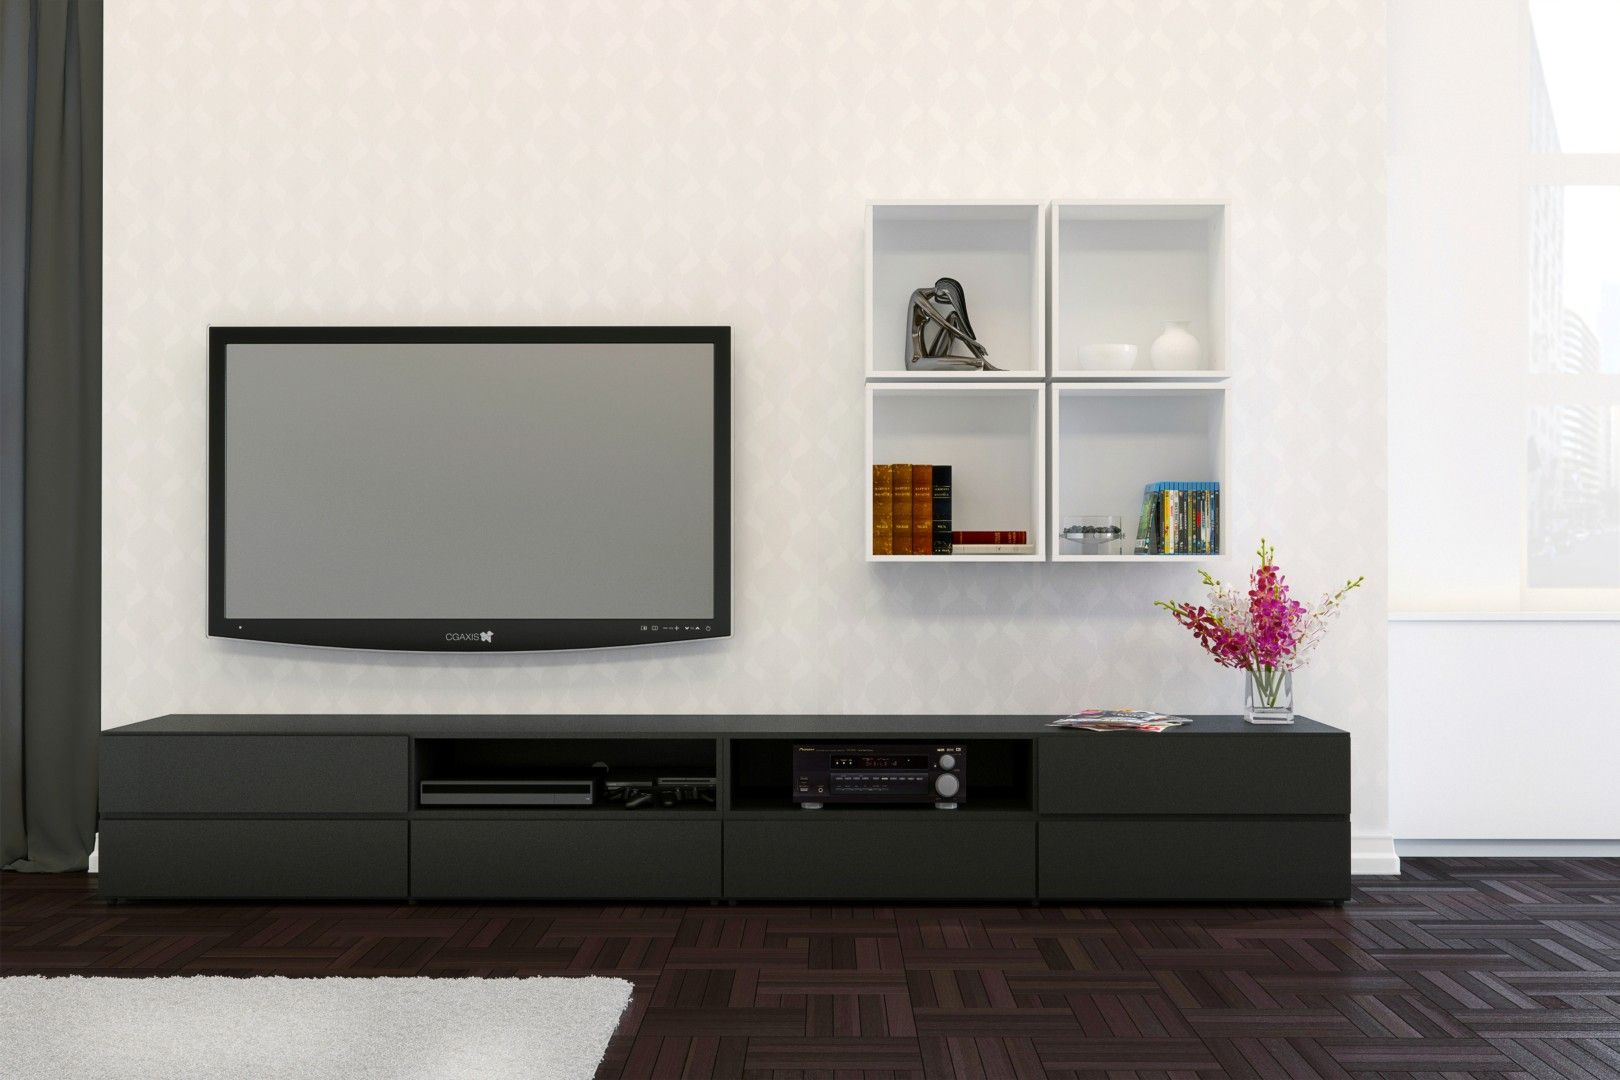 Traffic Tv Stand With Square Wall Shelves, In Black And Within Square Tv Stands (View 1 of 15)